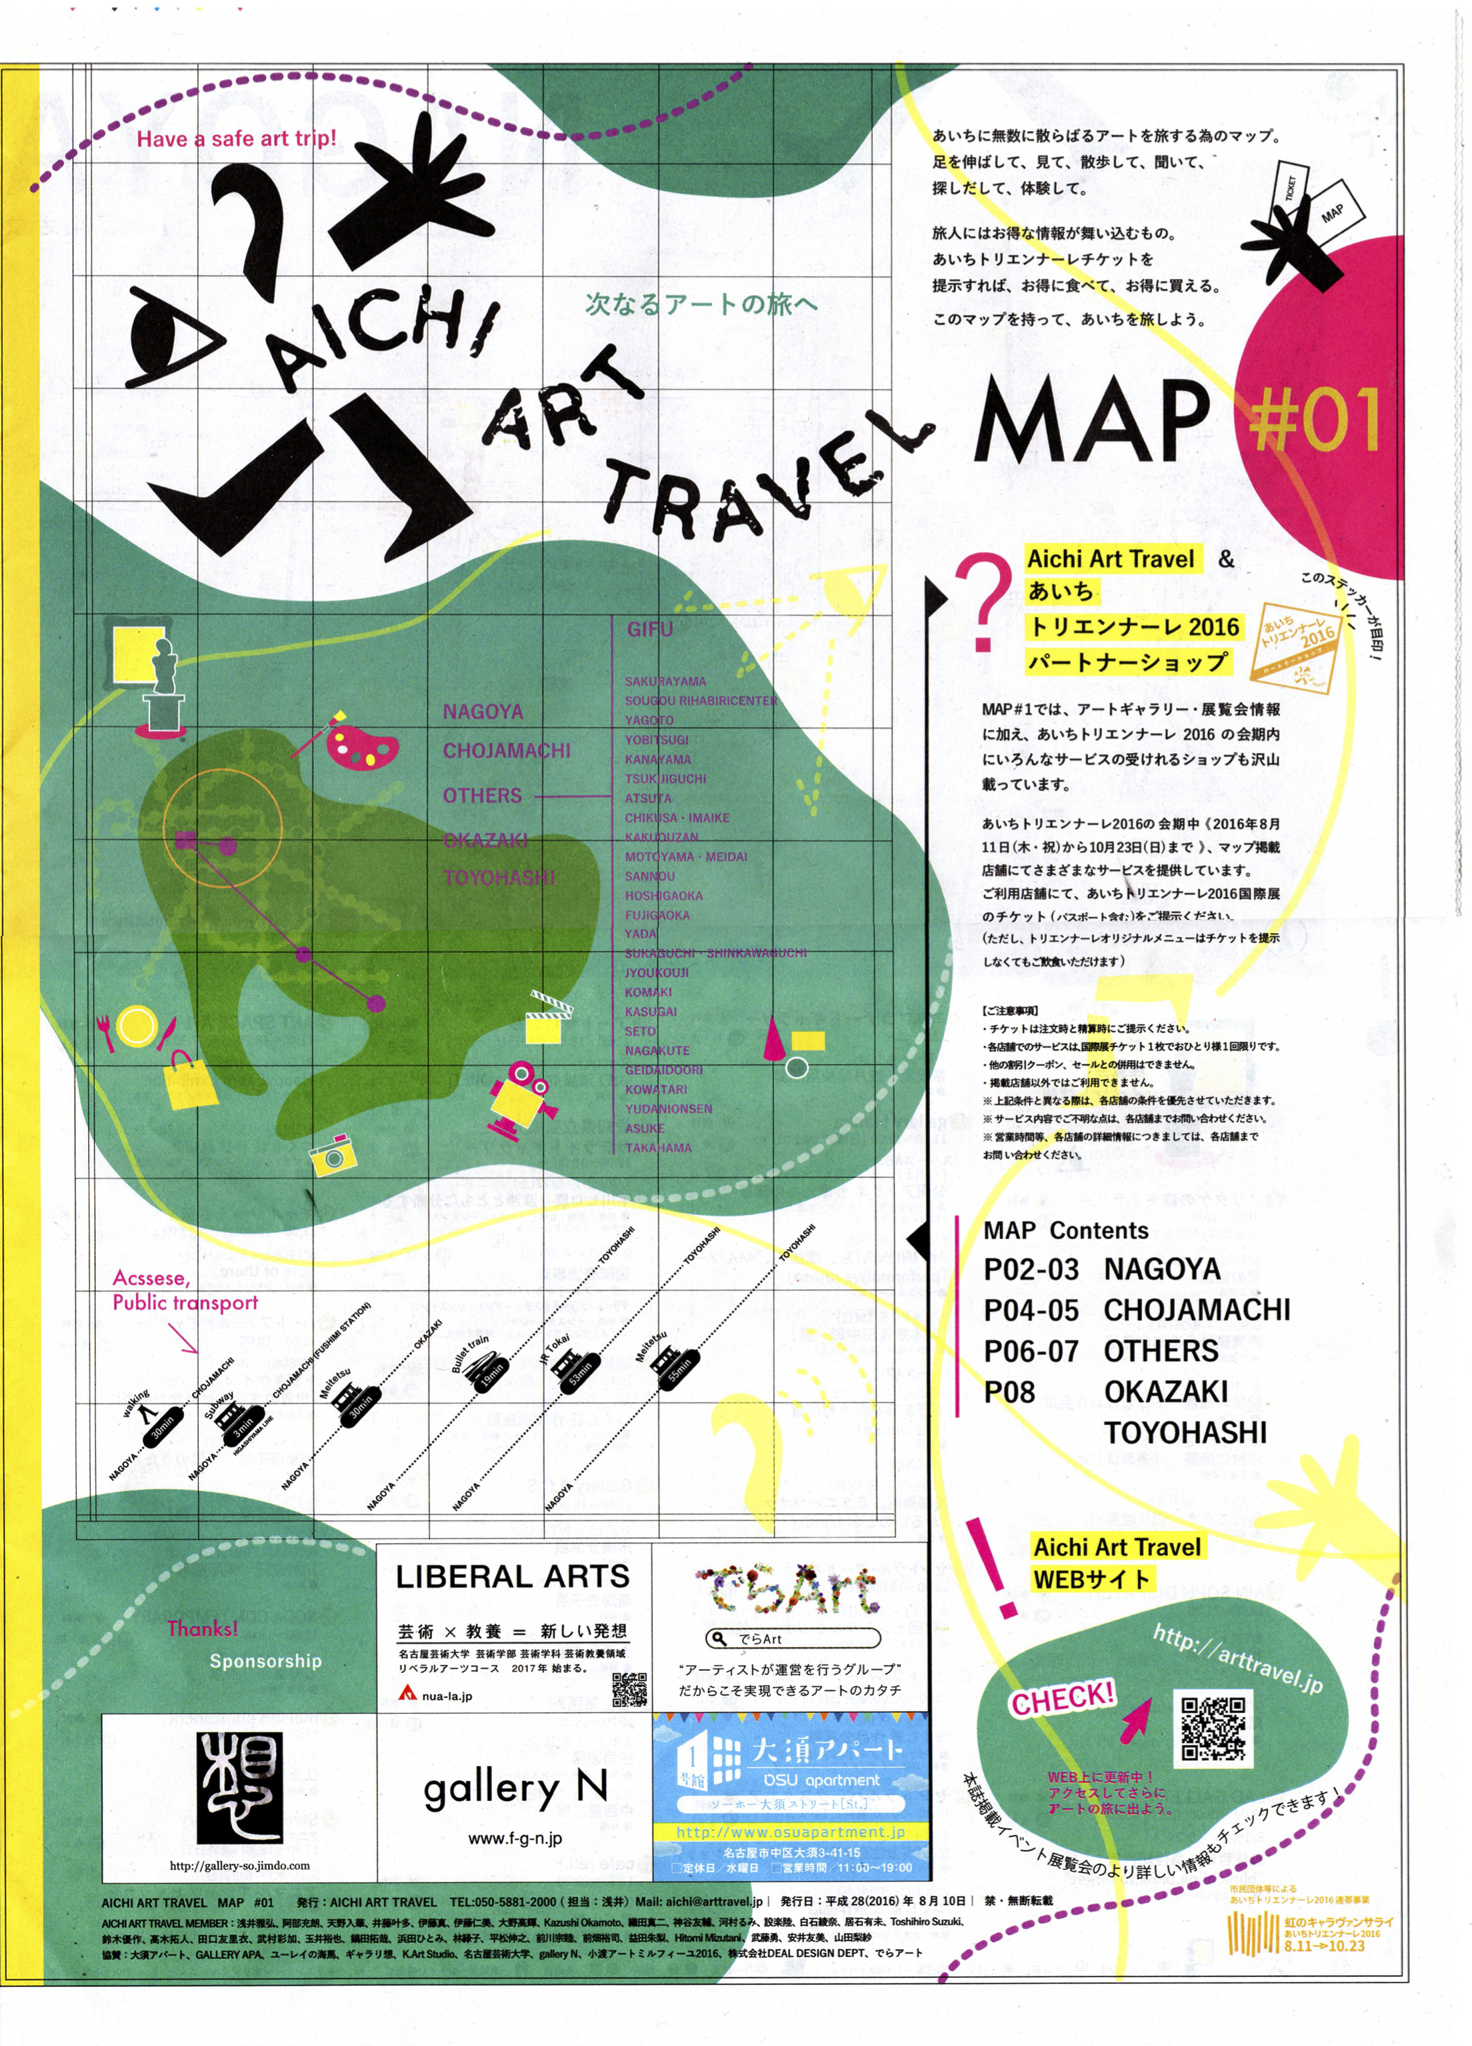 AICHI ART TRAVEL MAP#01 表紙